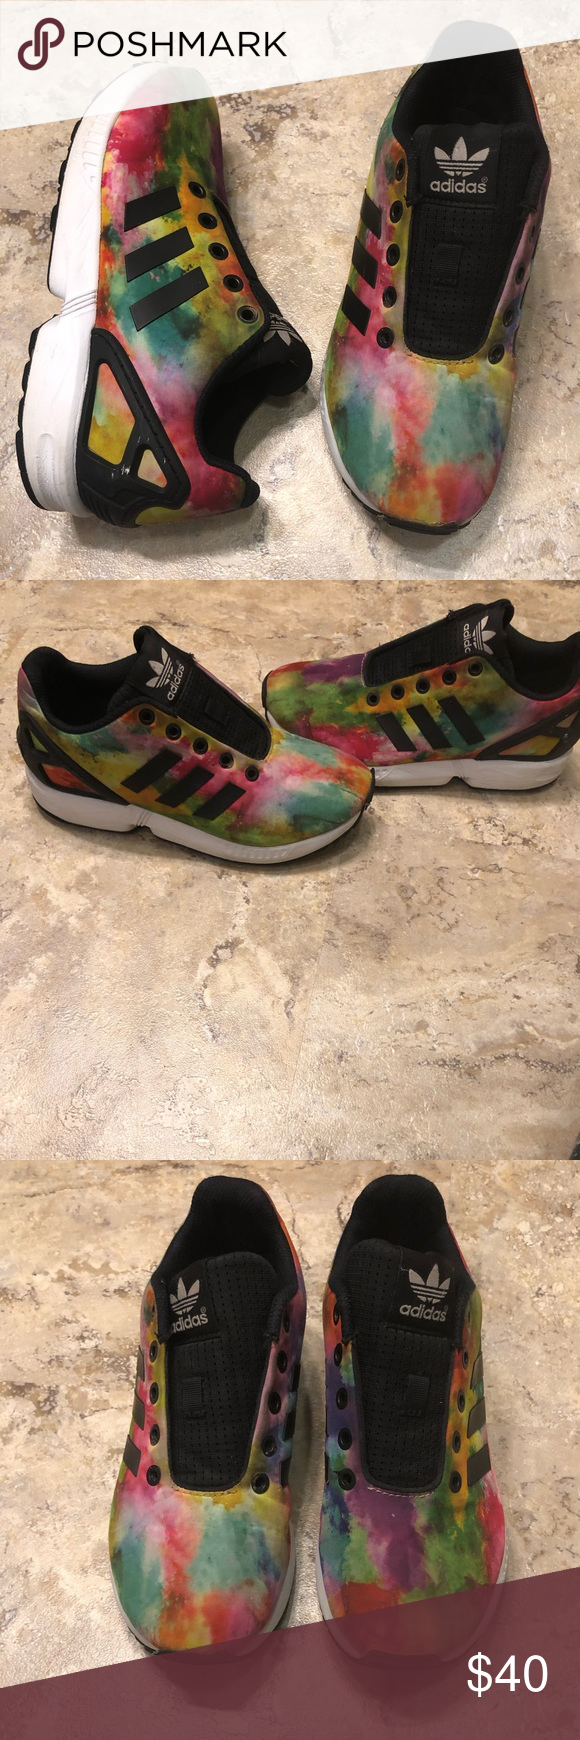 6937a9a75d46d Adidas Torsion ZX Flux Rainbow 4Y Women s Size 6 Pre owned. Doesn t come  with original box. Condition rate of 7 10. These shoes don t come with  laces.